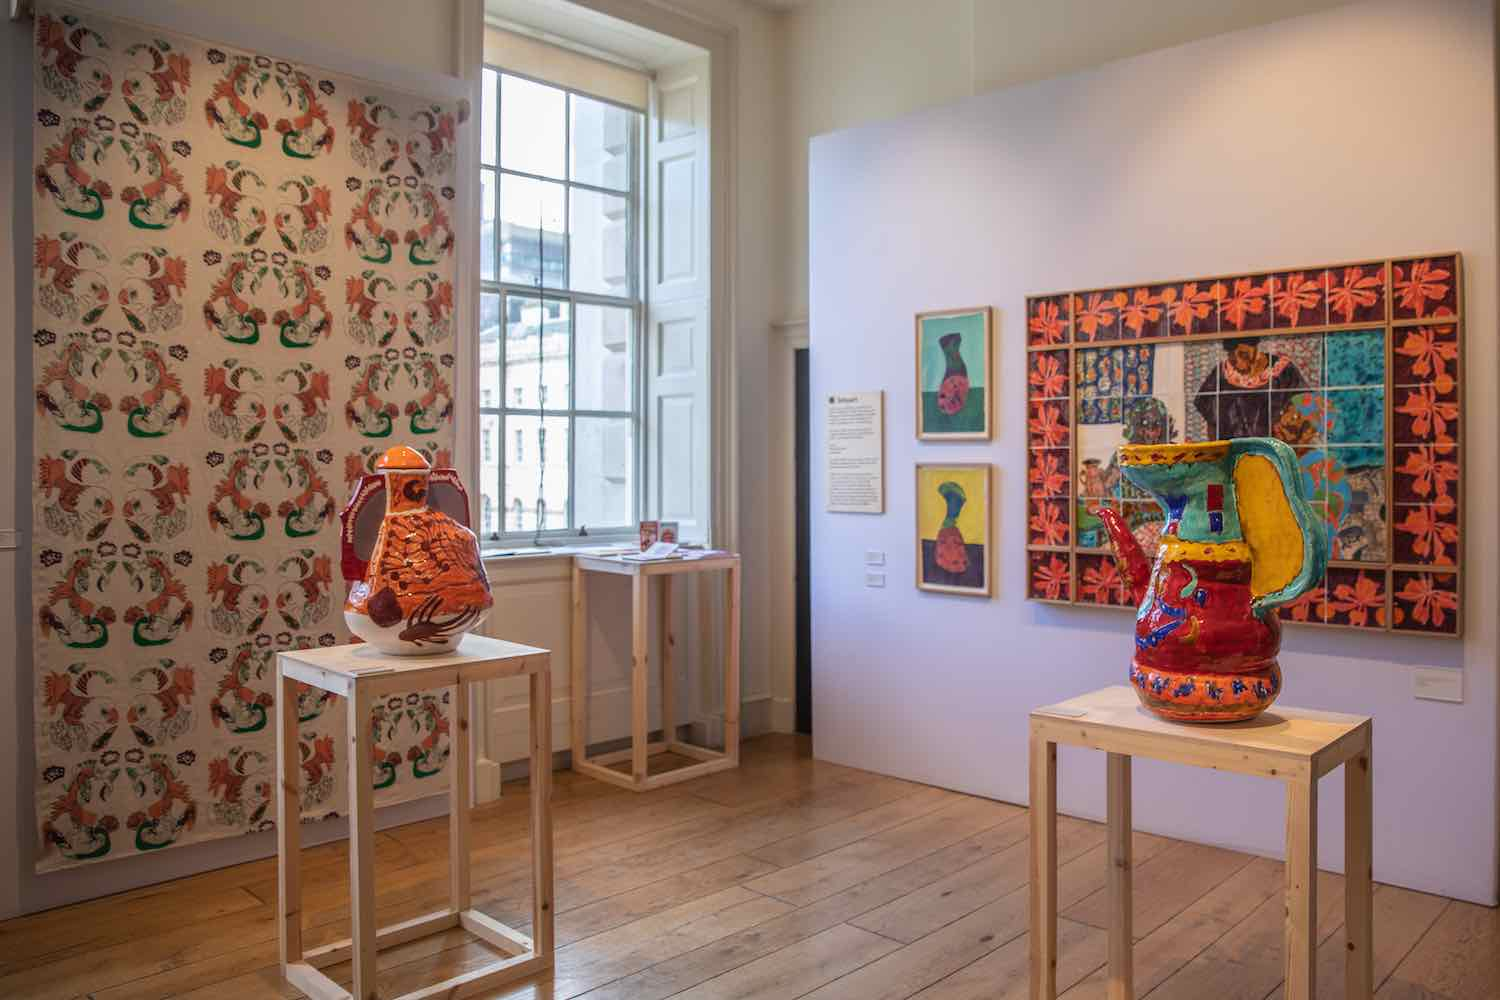 Collect Oustanding Display by a Gallery – Intoart, London - Photo by Iona Wolff; courtesy of Collect2020.